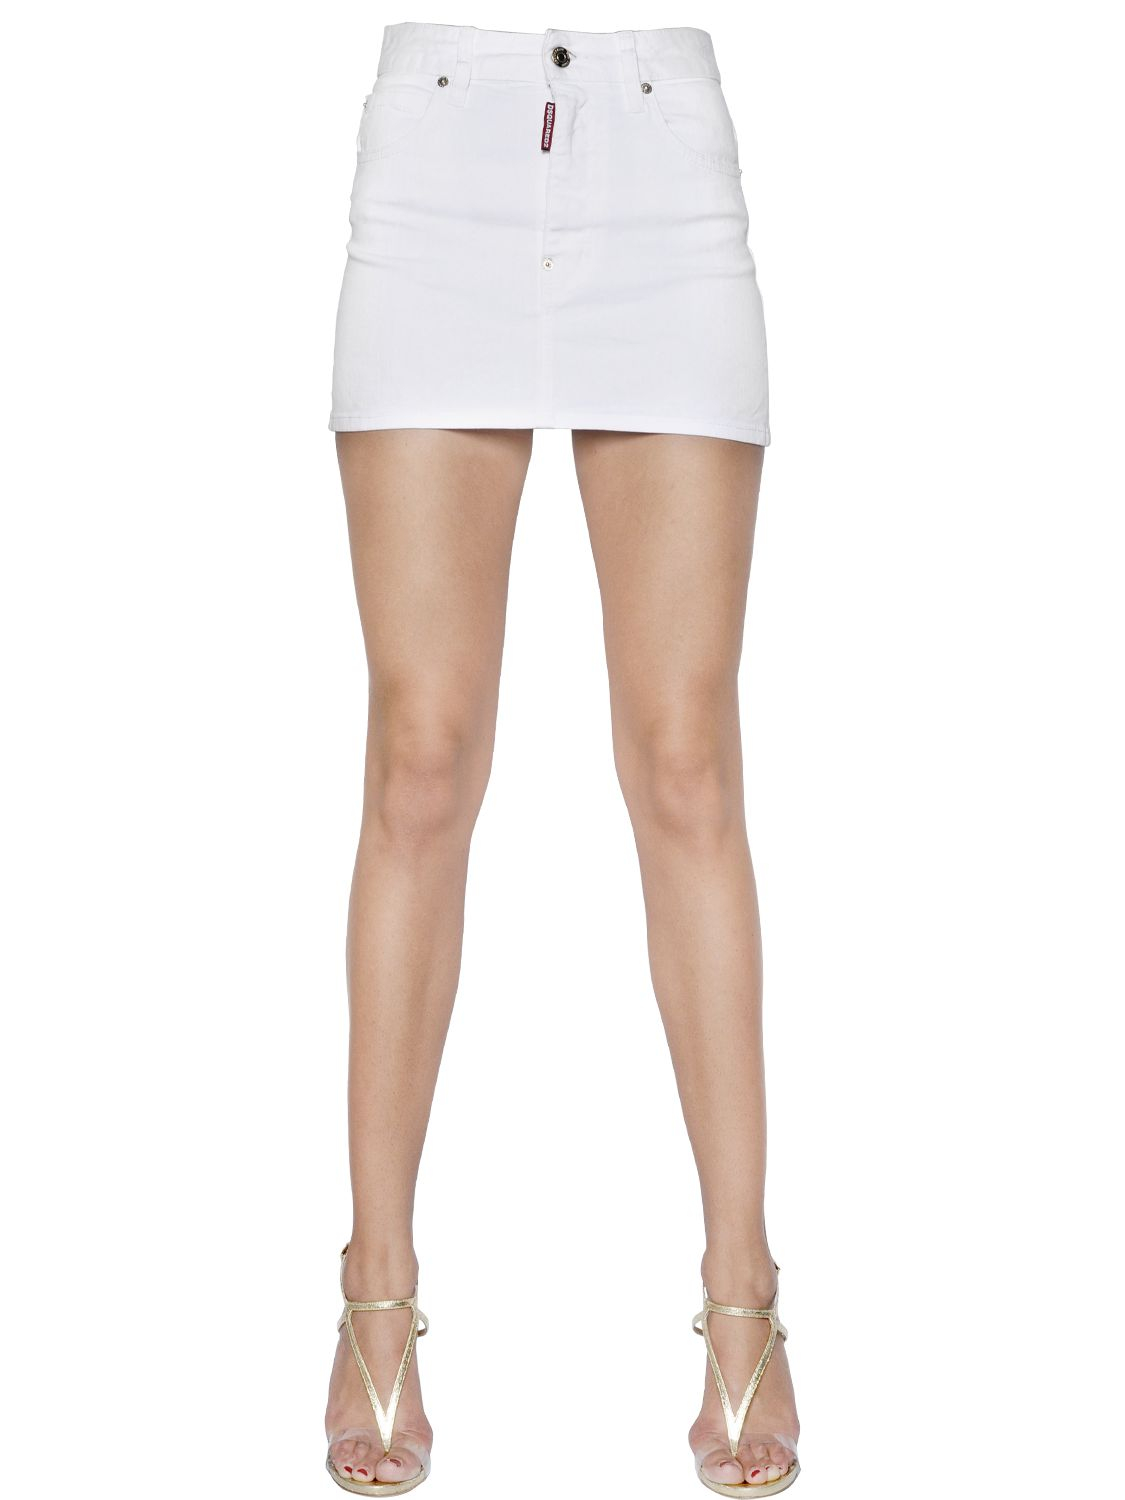 White Denim Mini Skirts - Dress Ala